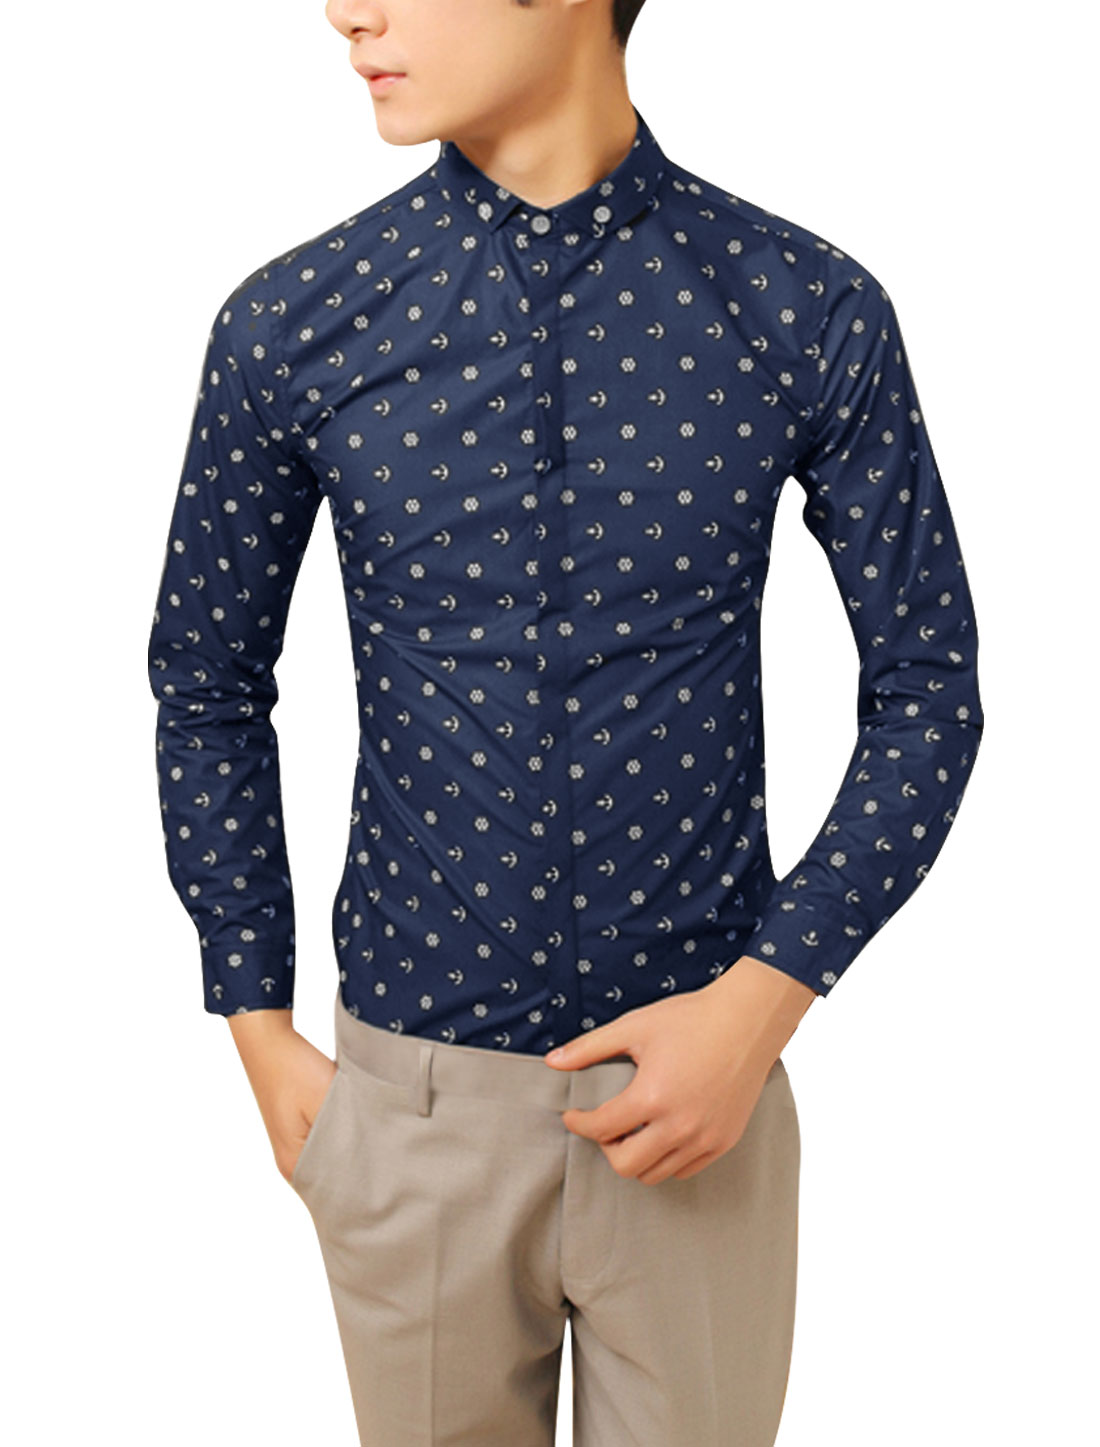 Navy Blue M Single Breasted Long Sleeve Cartoon Pattern Men Top Shirt